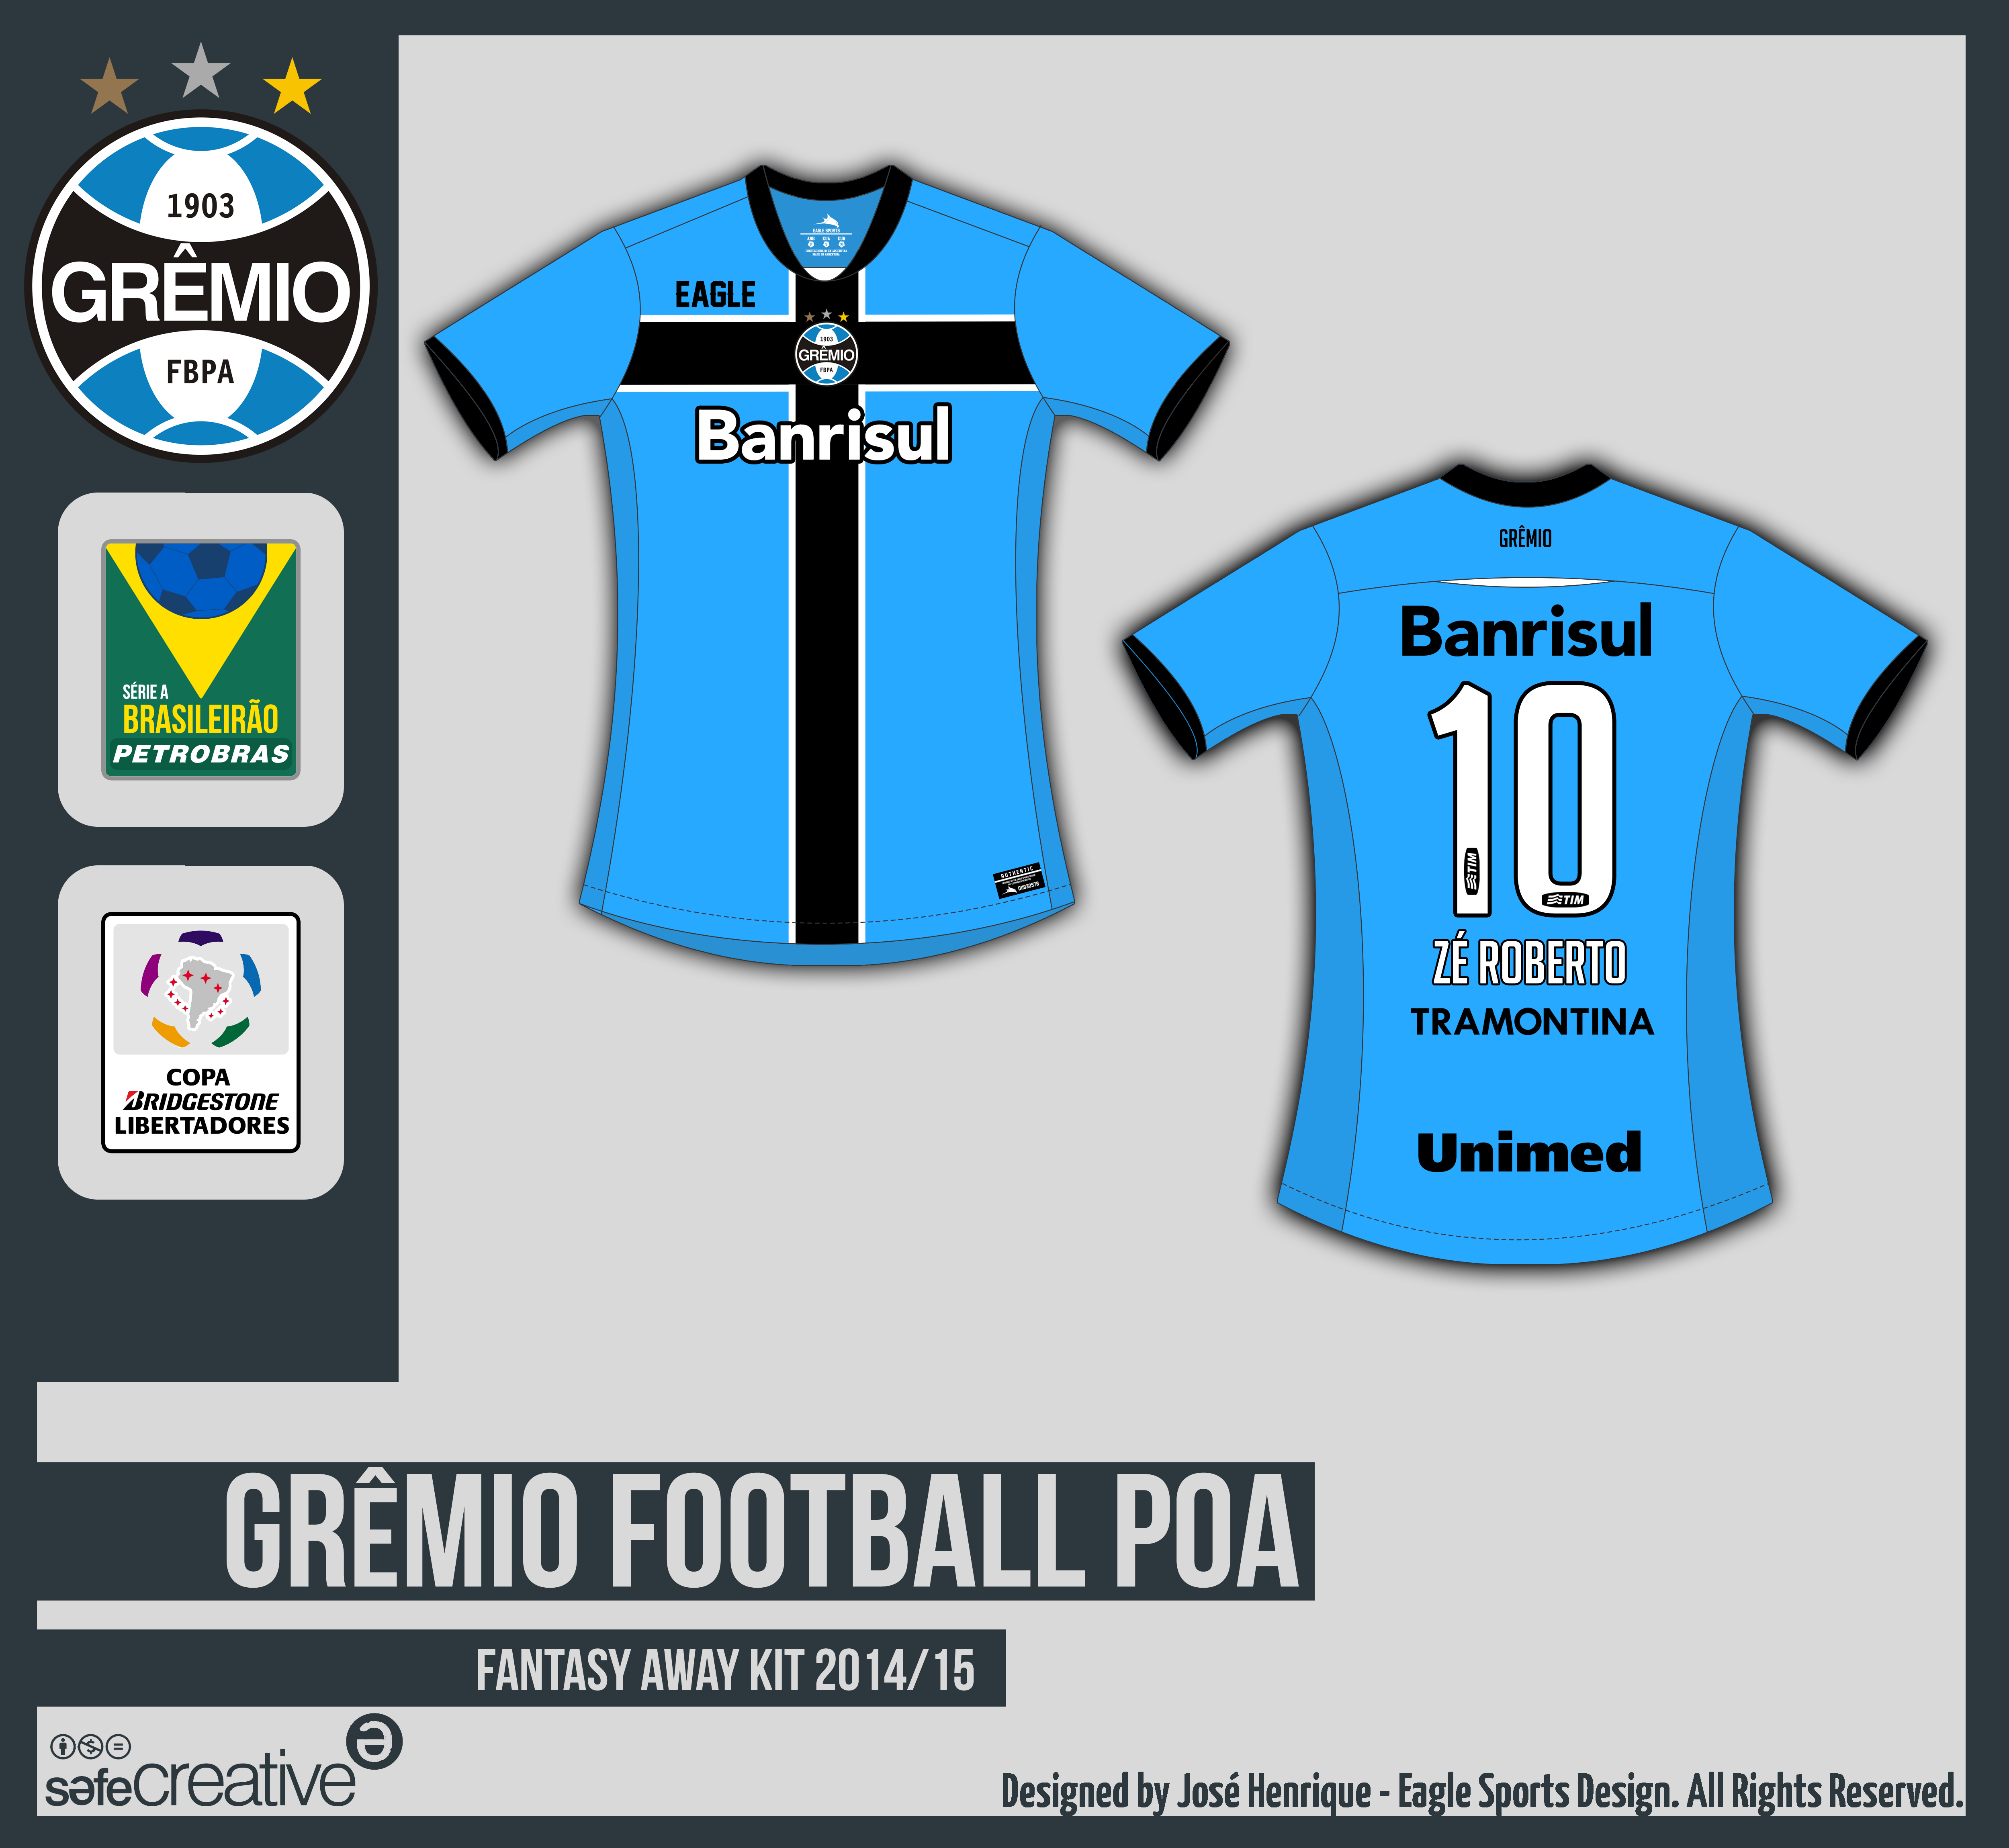 http://fc04.deviantart.net/fs71/f/2013/152/9/5/gremio_away_eagle_by_eaglesports-d67fcqa.png